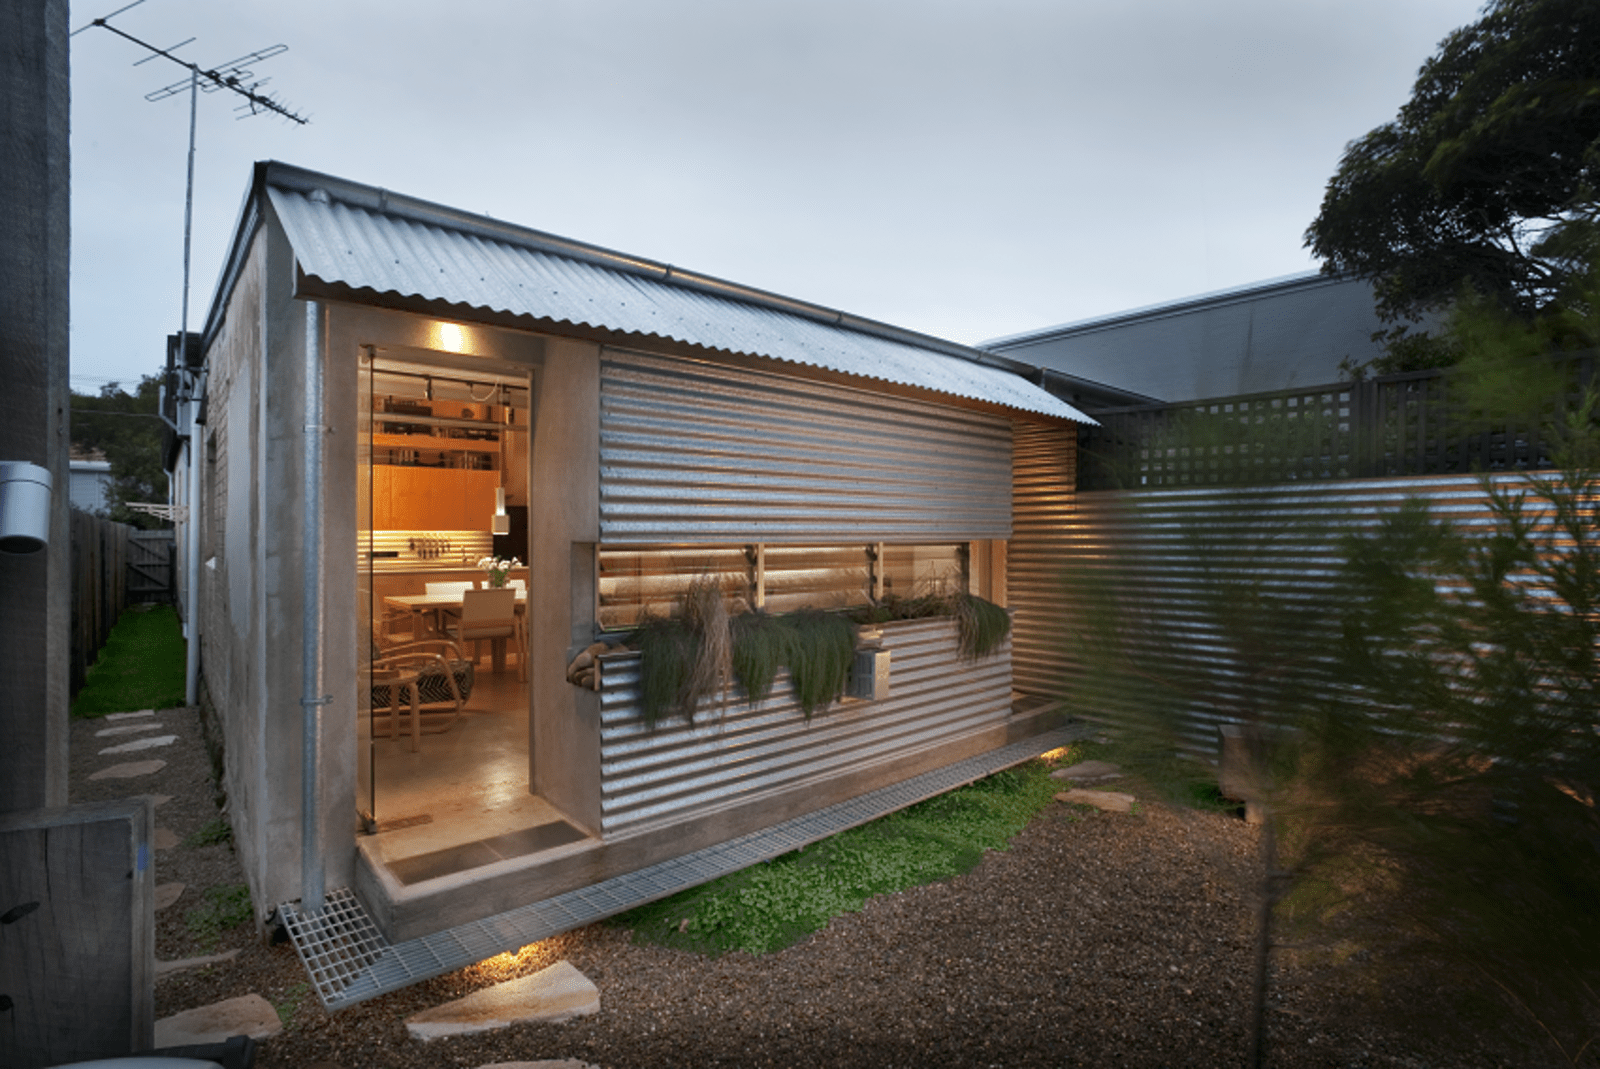 Steel And Concrete Homes Photo 1 Of 10 In Compact Australian Home Clad In Steel And